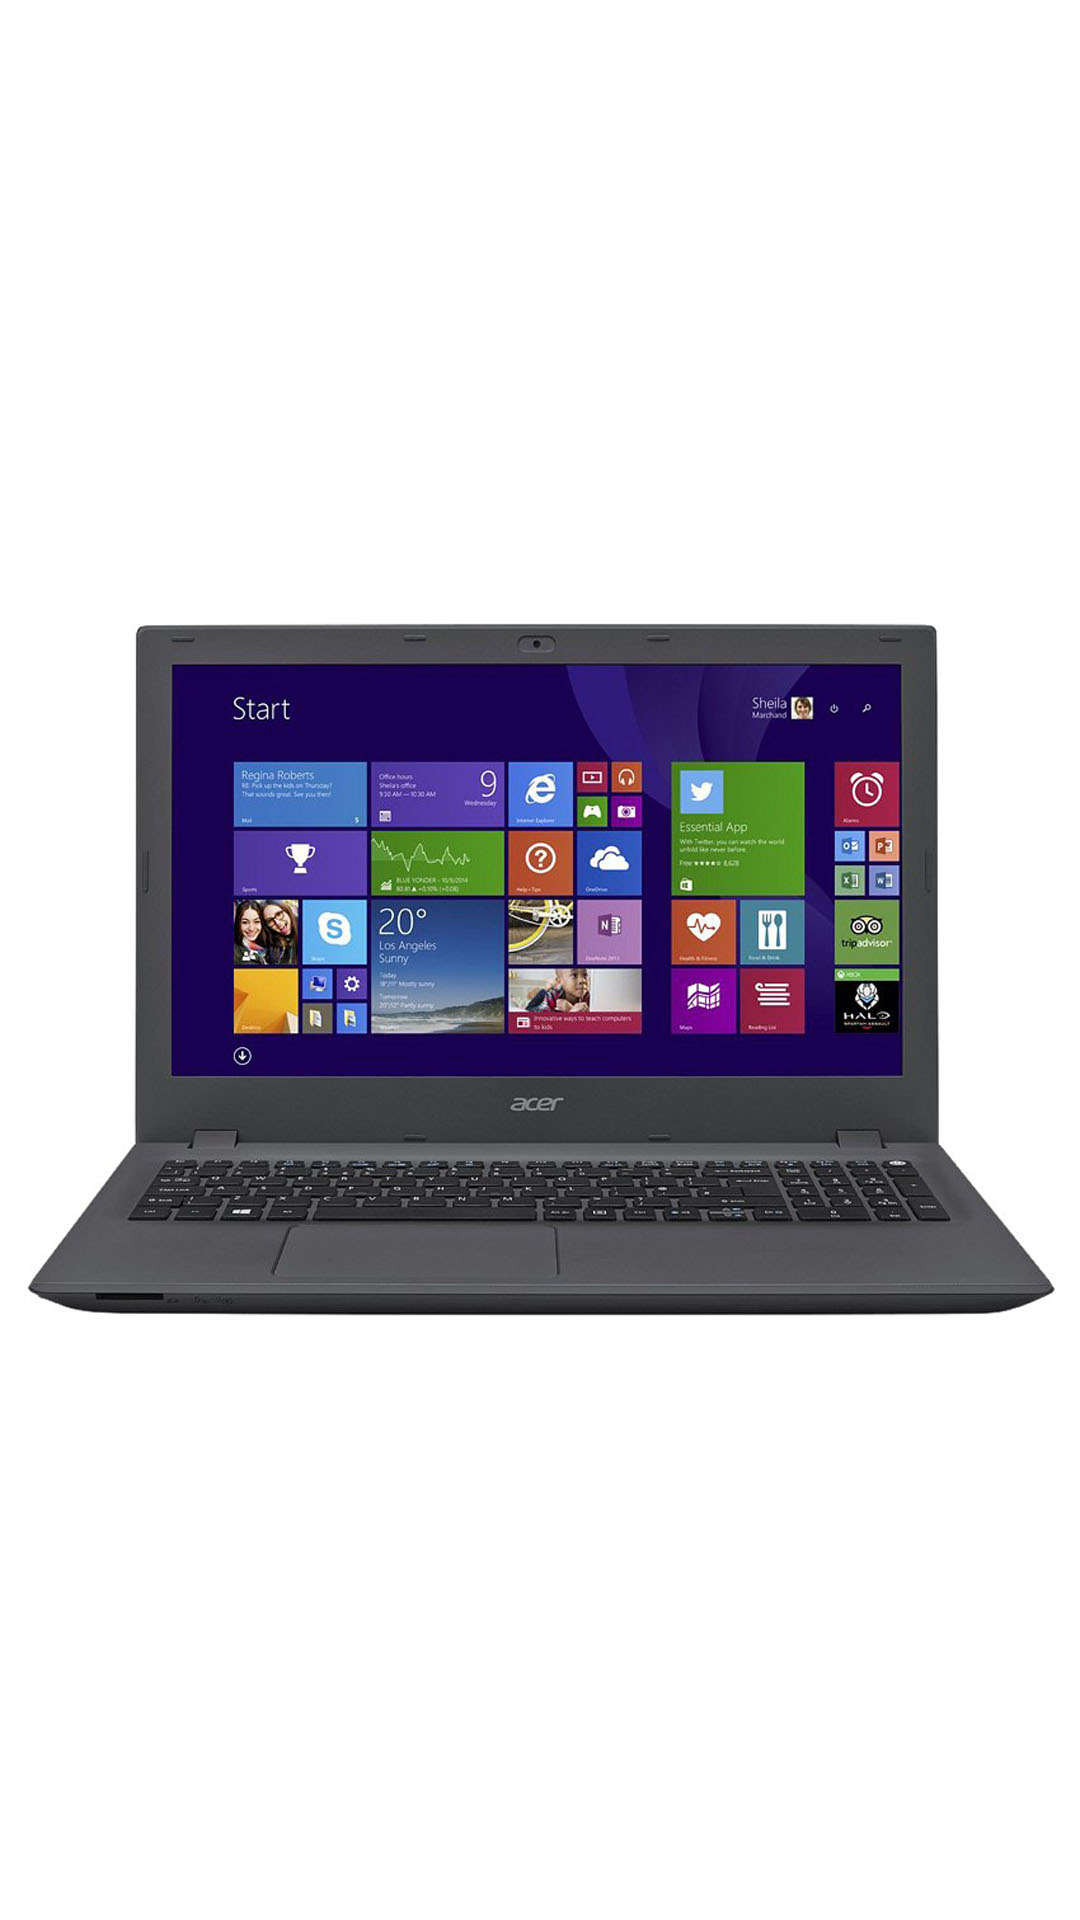 Acer Aspire ( E5-573 ) Notebook (Core i3 (4th Generation)/4 GB/500 GB/39.62 cm (15.6)/Linux) (Charcoal Grey)